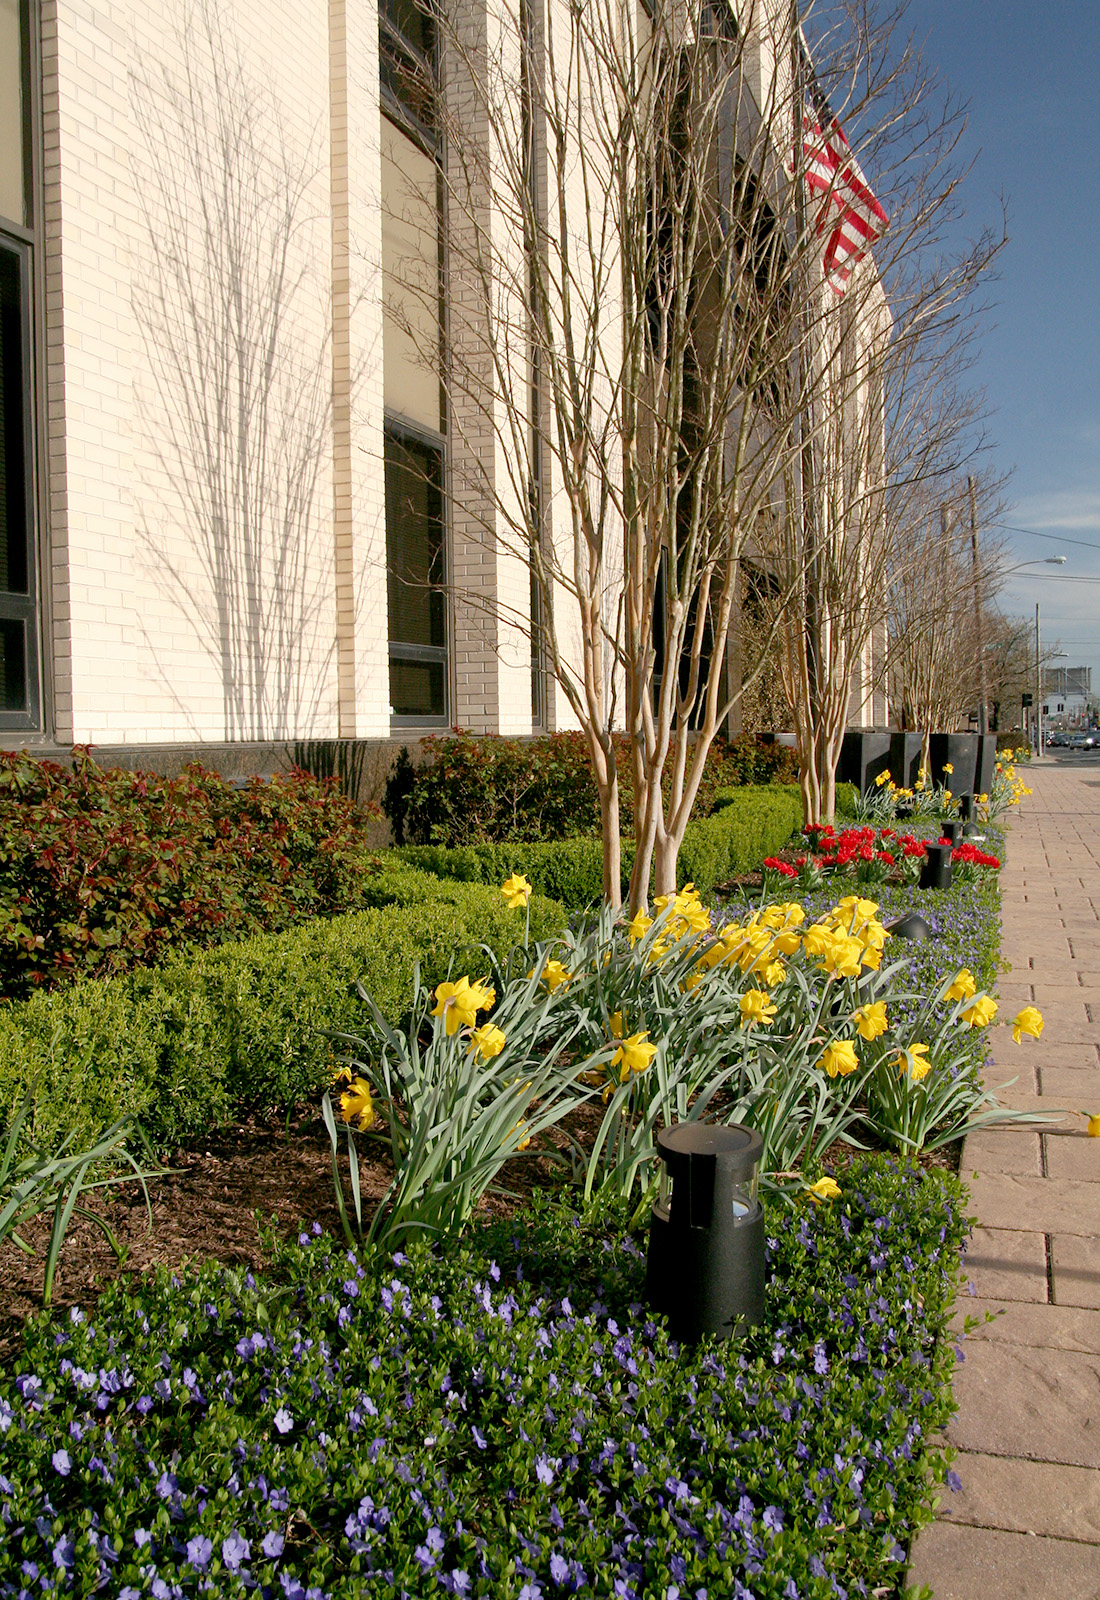 Spring planting a commercial location.